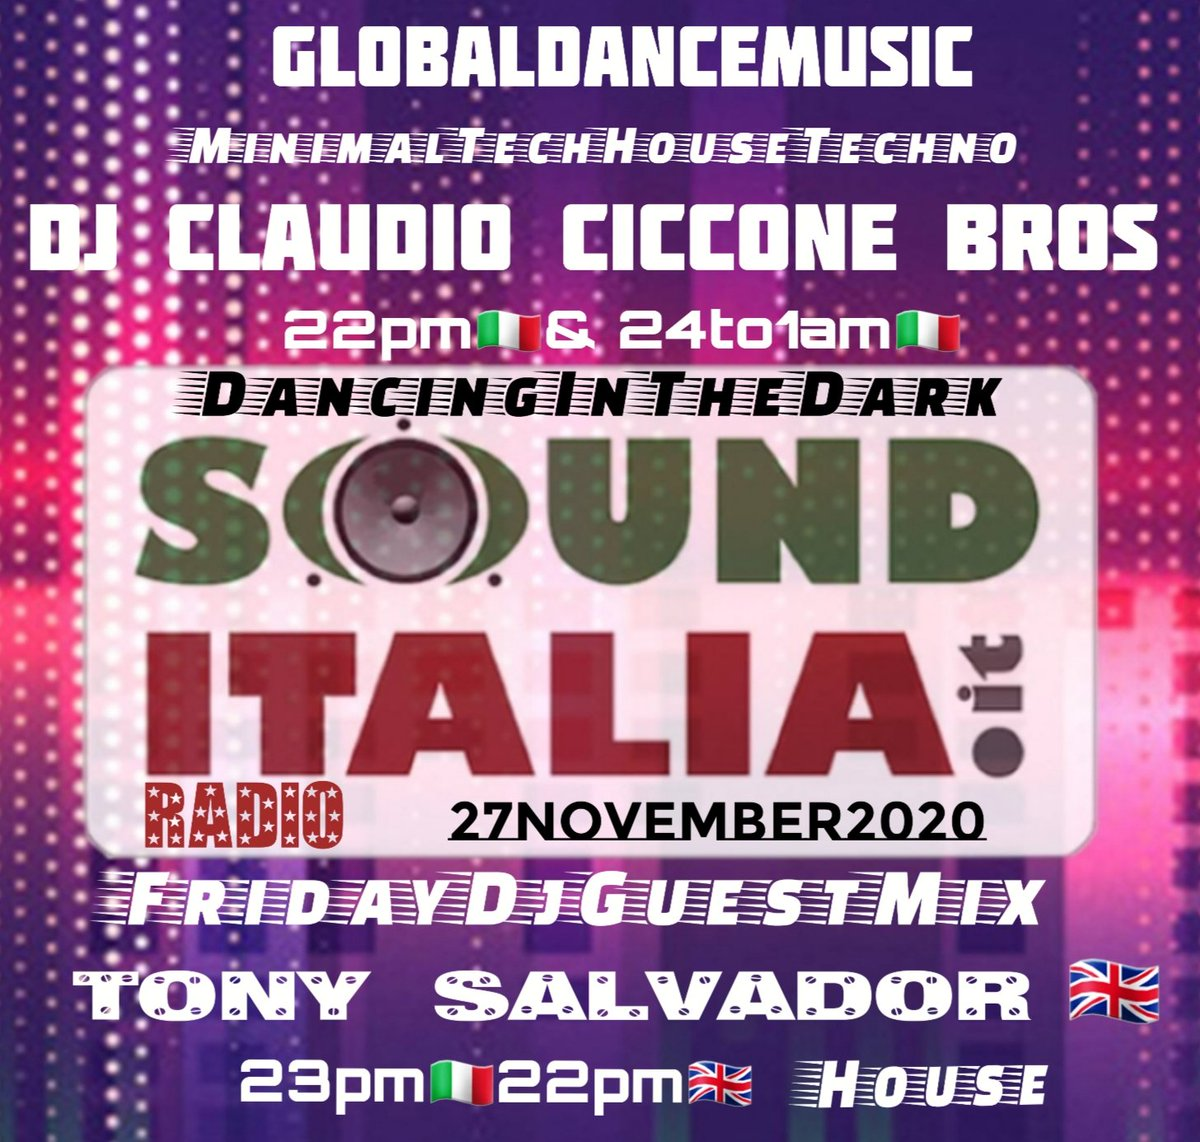 #GlobalDanceMusic  EveryFriday&Saturday On @sounditaliaWebR  📻 in #DancingInTheDark  22pm🇮🇹 & 24amTo1am🇮🇹👇 #DjClaudioCicconeBros 🇮🇹🎧🔊 #MinimalDeep #techhouse #techno Our #FridayDjGuestMix👇 23pm🇮🇹 22pm🇬🇧 #TonySalvador From LondonUk🇬🇧 #House 🔊📻👇 https://t.co/LbRRkrktvY https://t.co/IcTg2gUilM